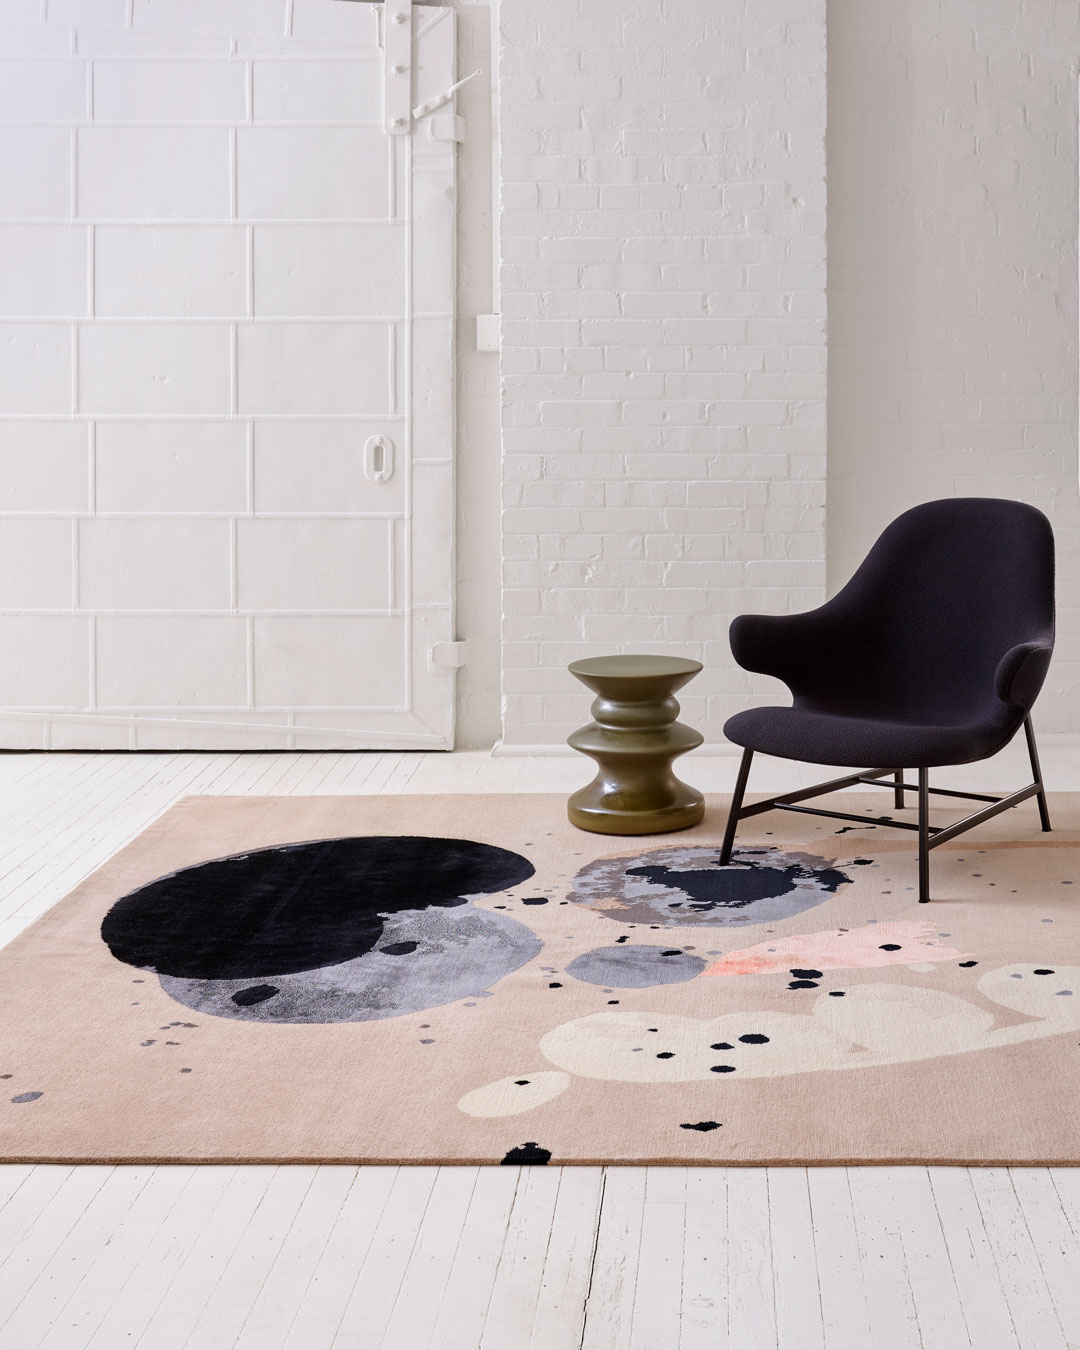 Seed Pod by Louise Olsen